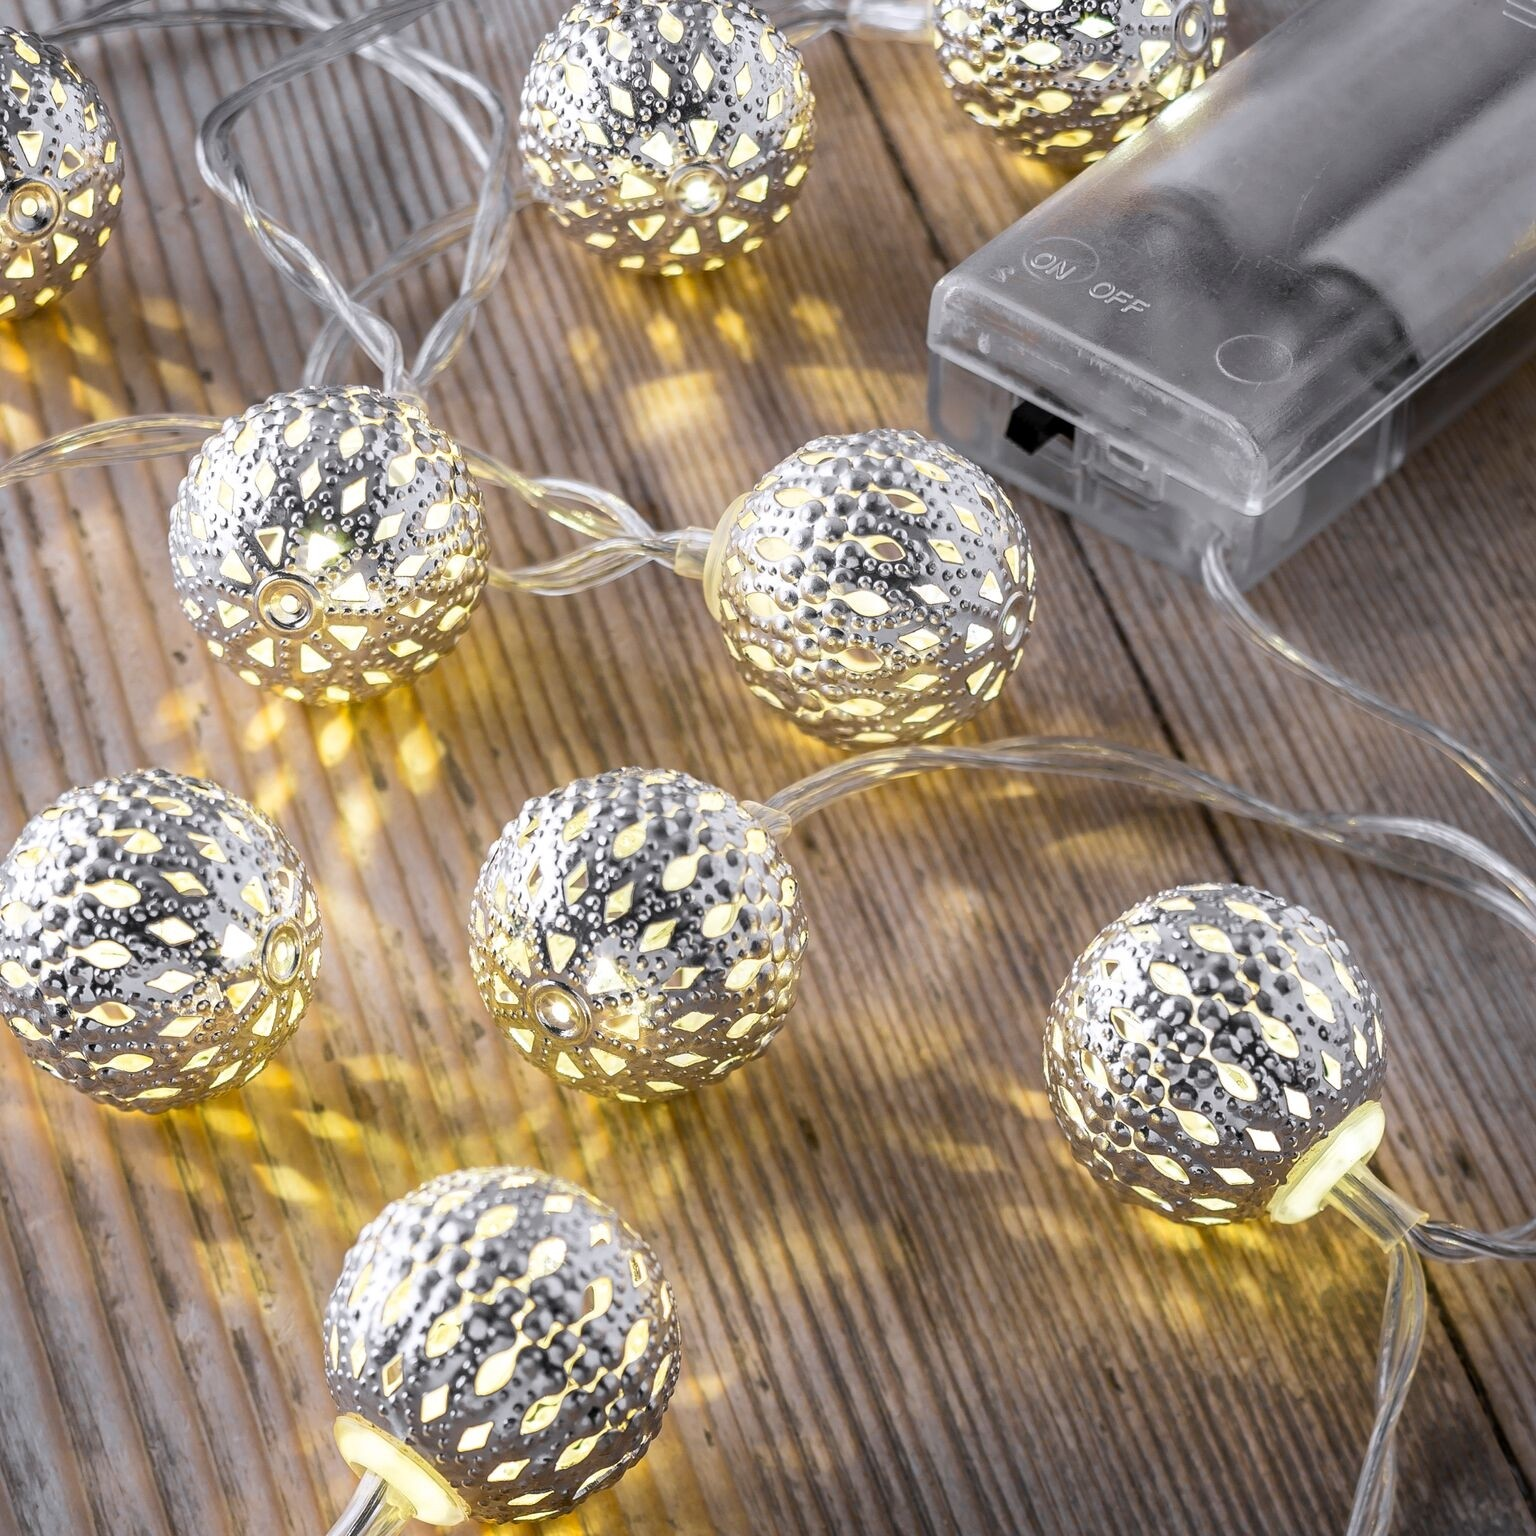 Ball String Lights Indoor : Set of 12 Battery Operated 2.5m Indoor String Lights - Mini Maroq Balls - Auraglow LED Lighting